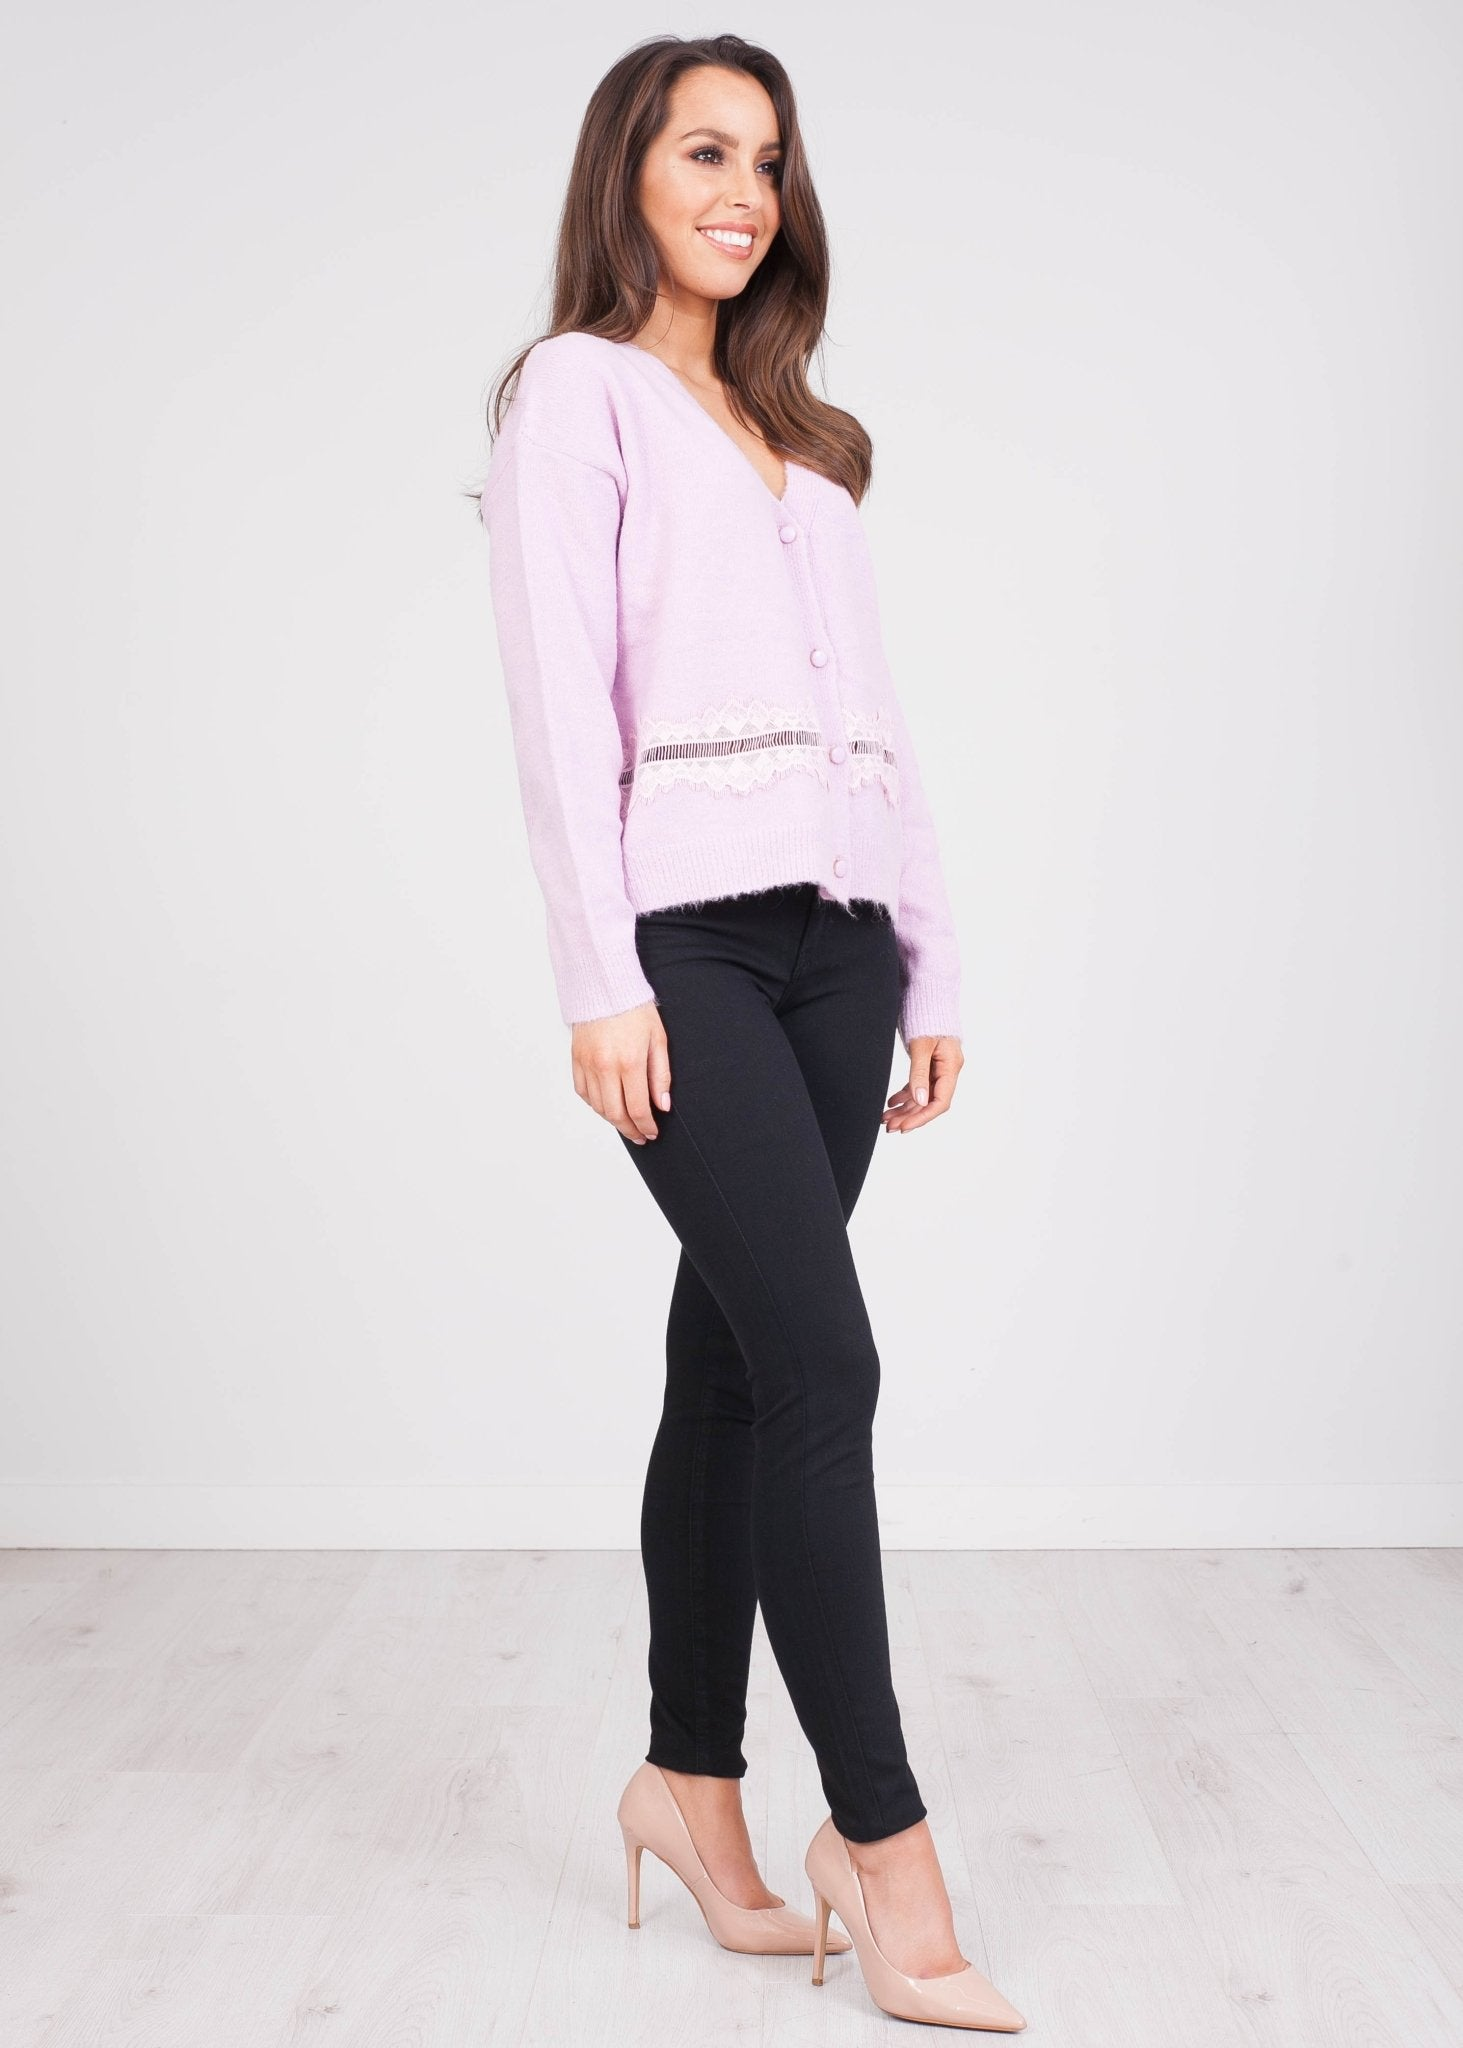 Cherie Lilac Cardigan - The Walk in Wardrobe